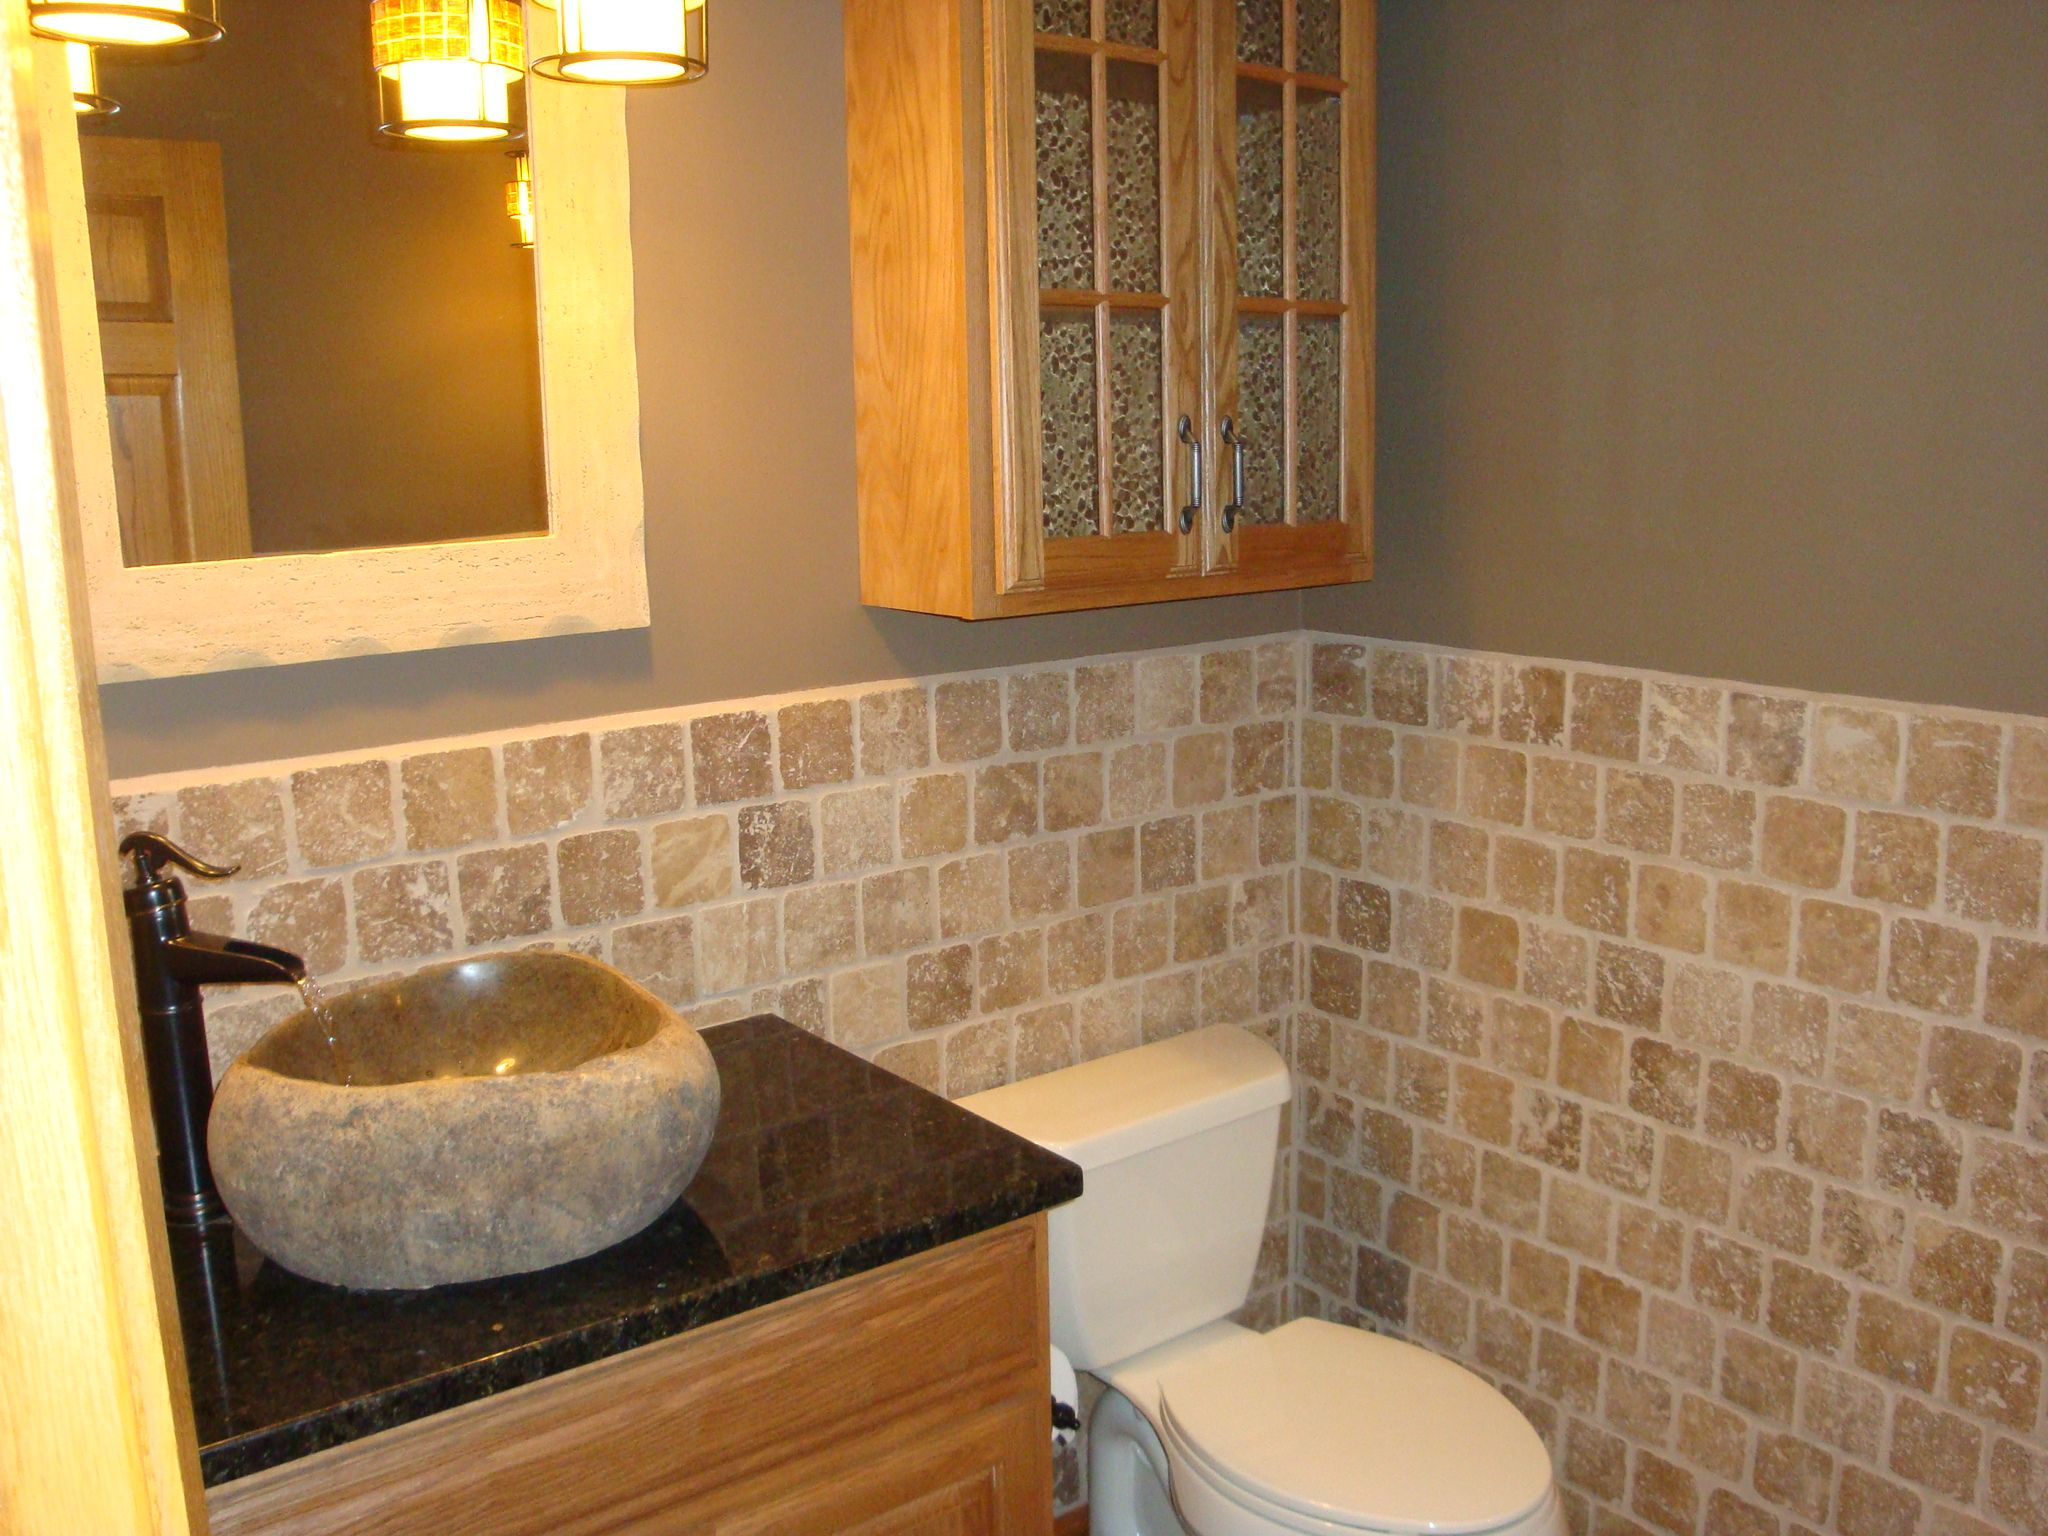 Guest bathroom remodel bathrooms pinterest - Guest bathroom remodel designs ...